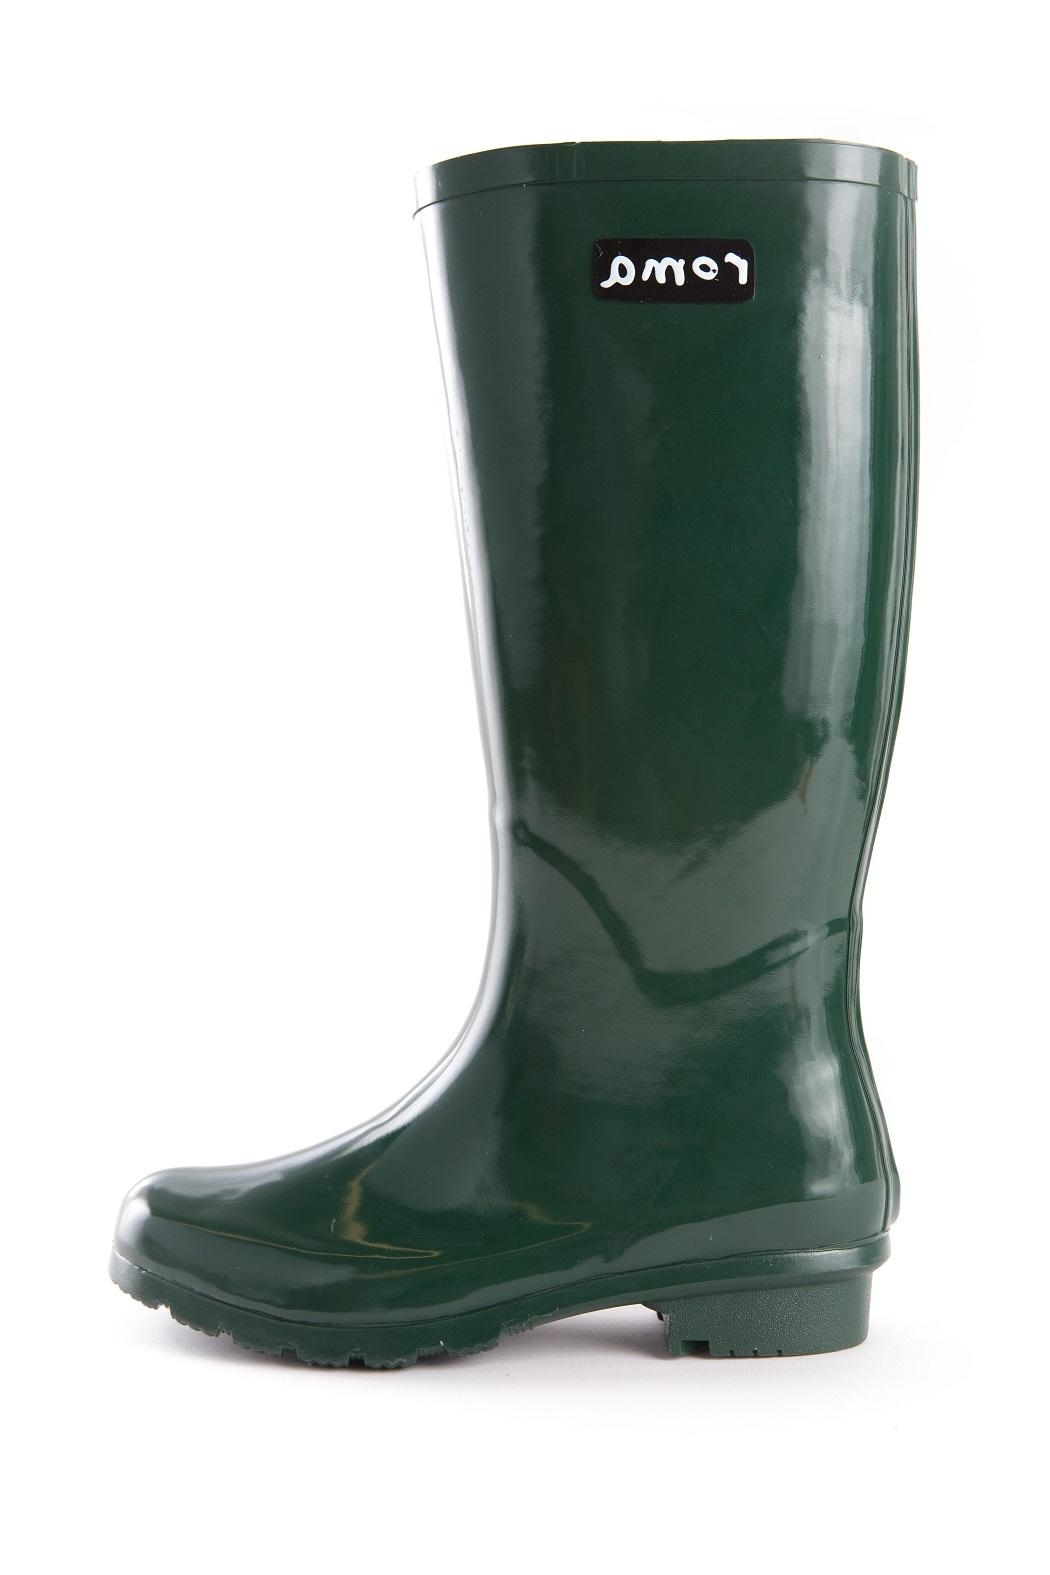 Roma Rain Boots (many colors available)